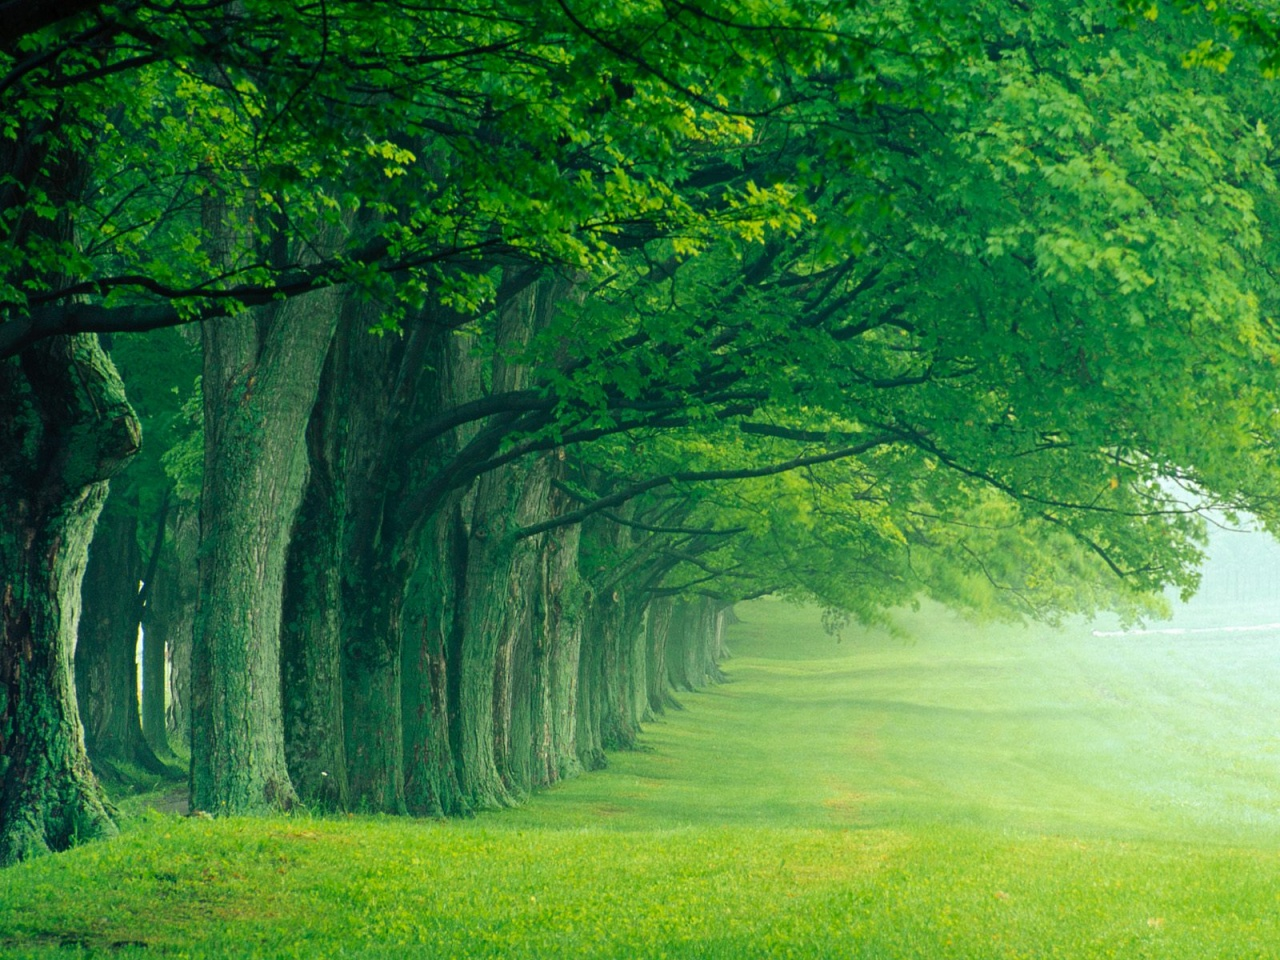 Nature Wallpaper Backgrounds Summer wallpaper 1280x960